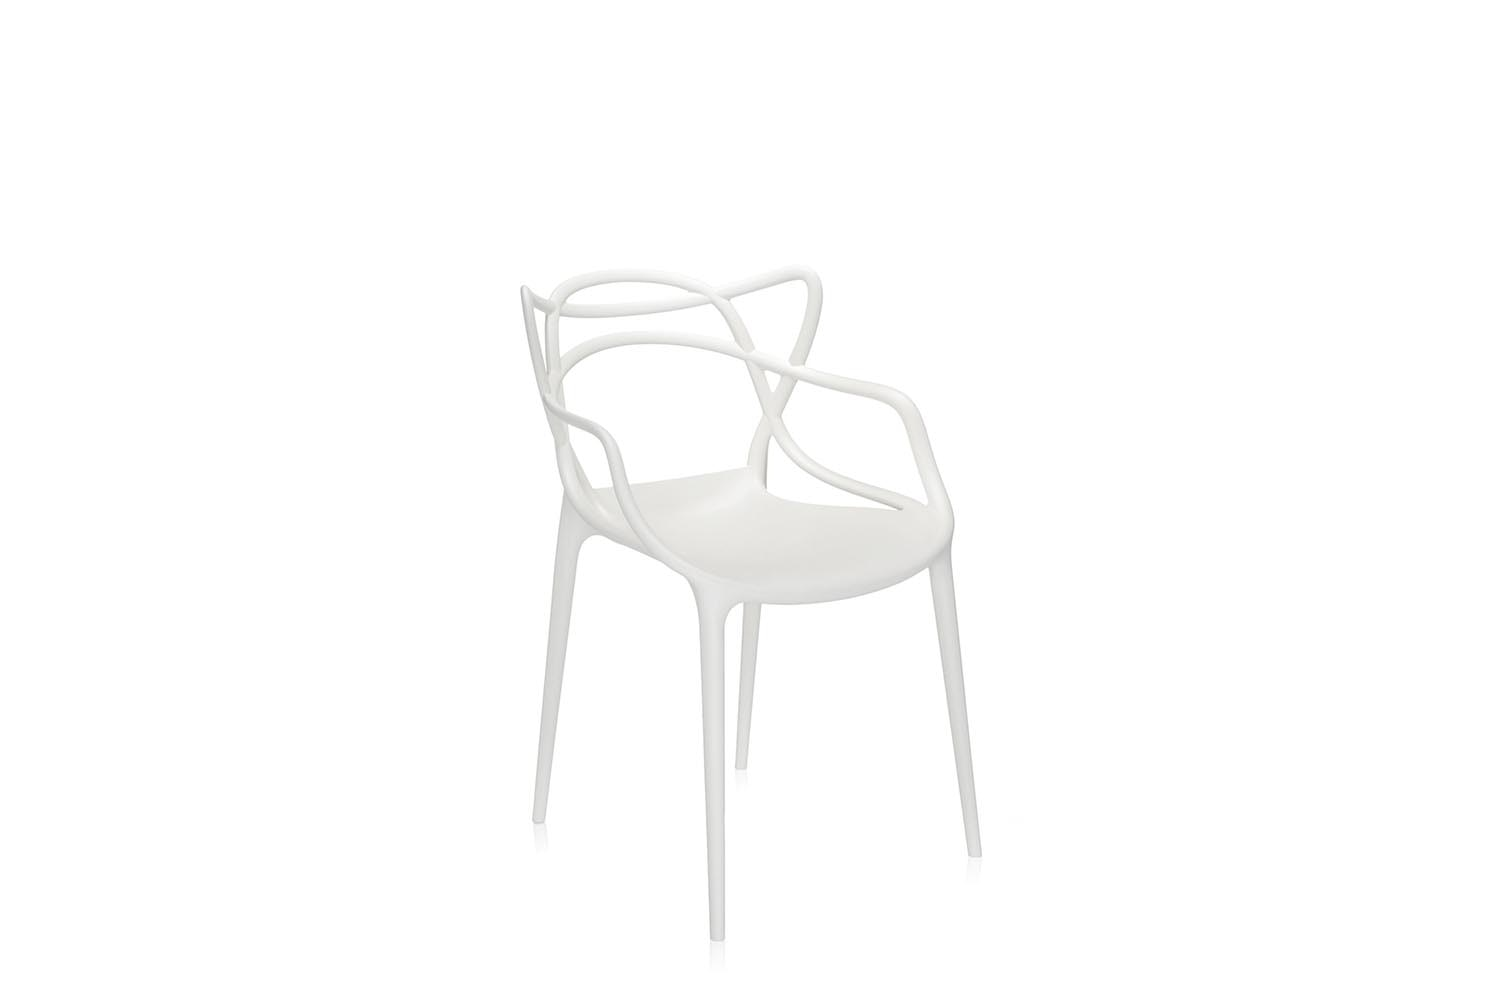 Masters Chair With Arms By Philippe Starck With Eugeni Quitllet For Kartell  | Space Furniture